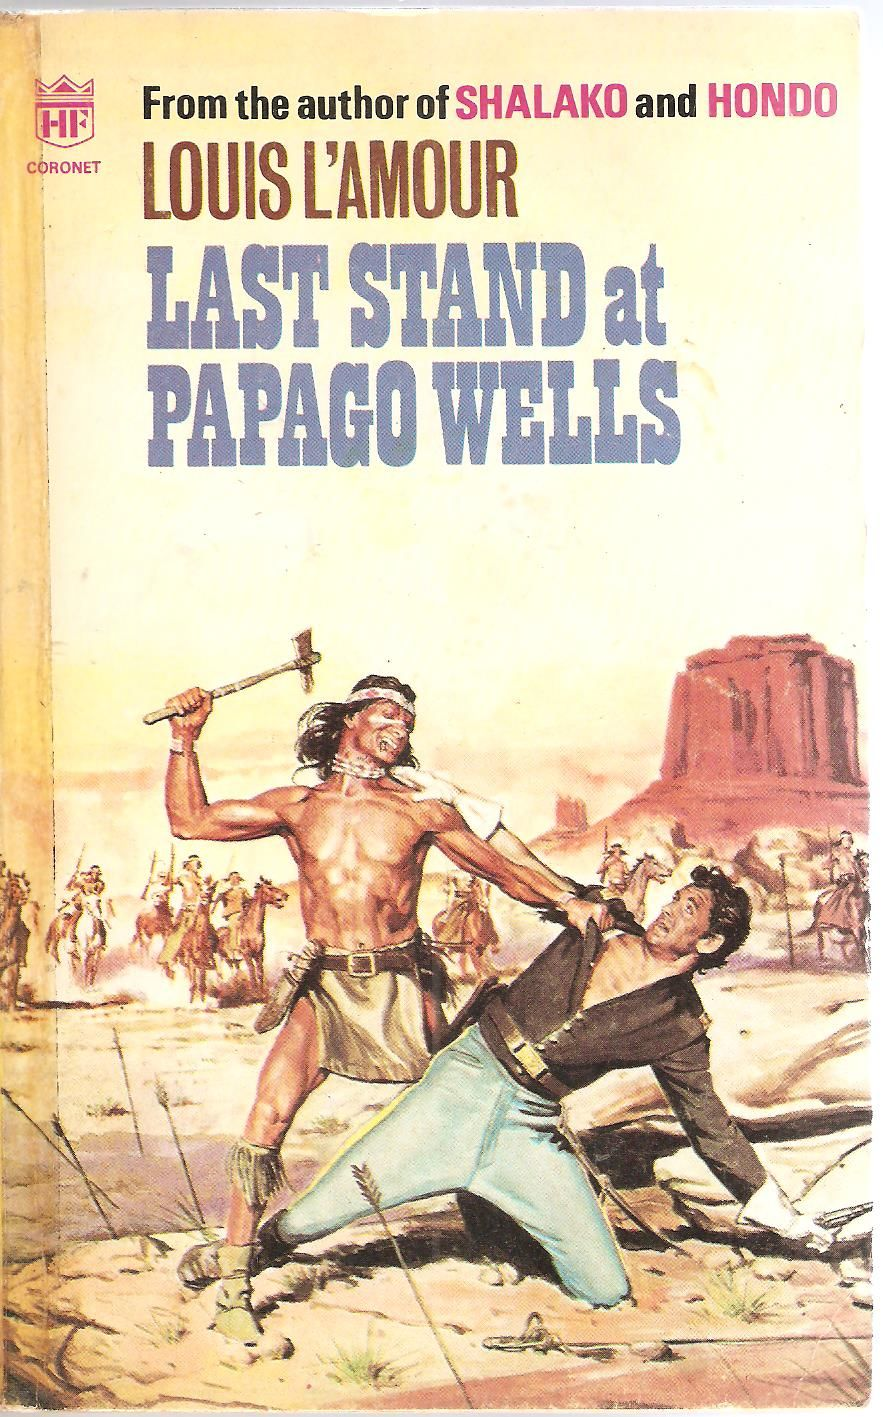 poster Wall art reproduction. Saddle bum: Vintage Cowboy pulp book cover